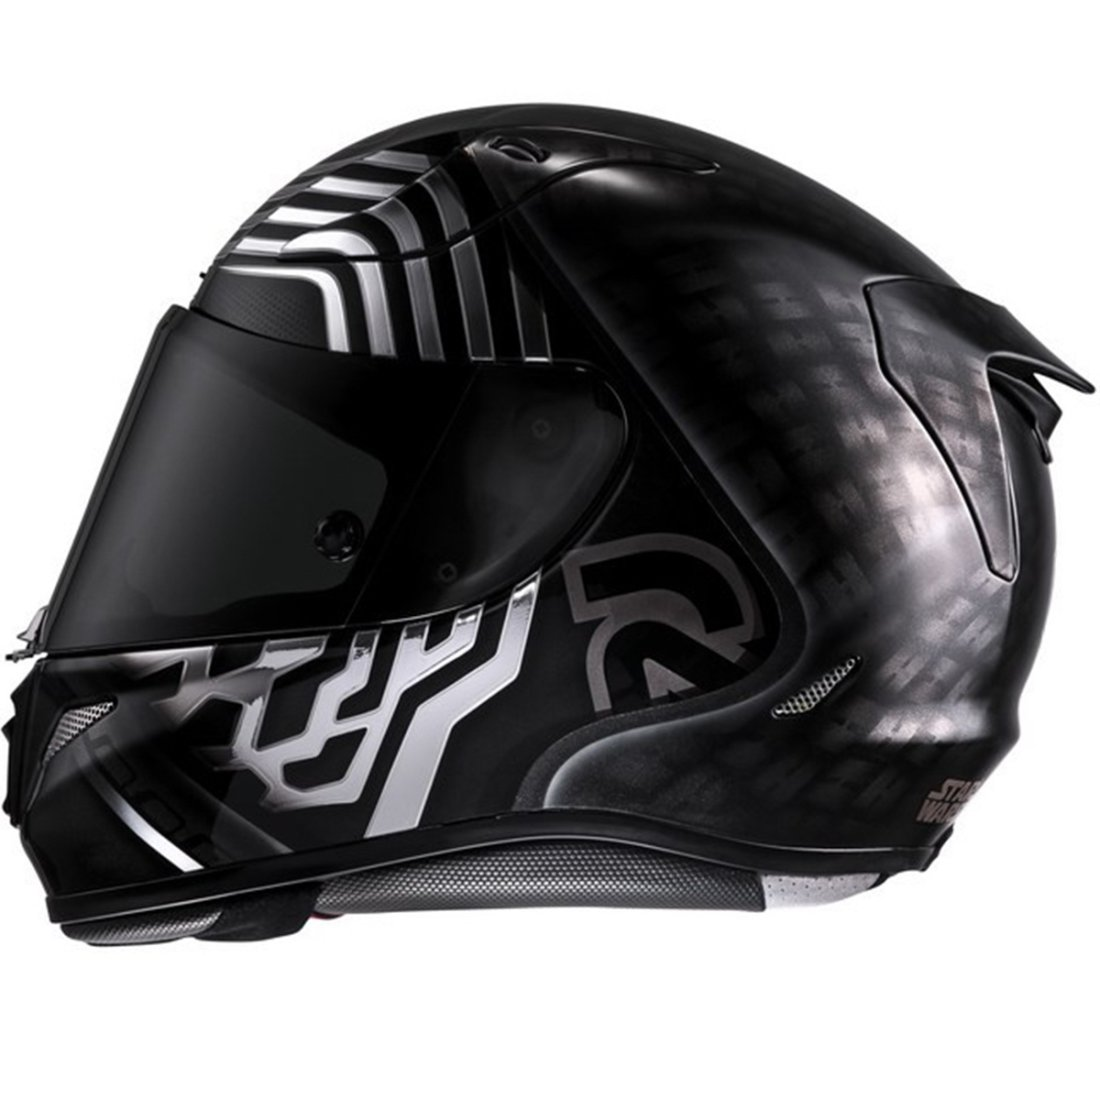 hjc rpha 11 kylo ren mc 5sf helmet motocard. Black Bedroom Furniture Sets. Home Design Ideas